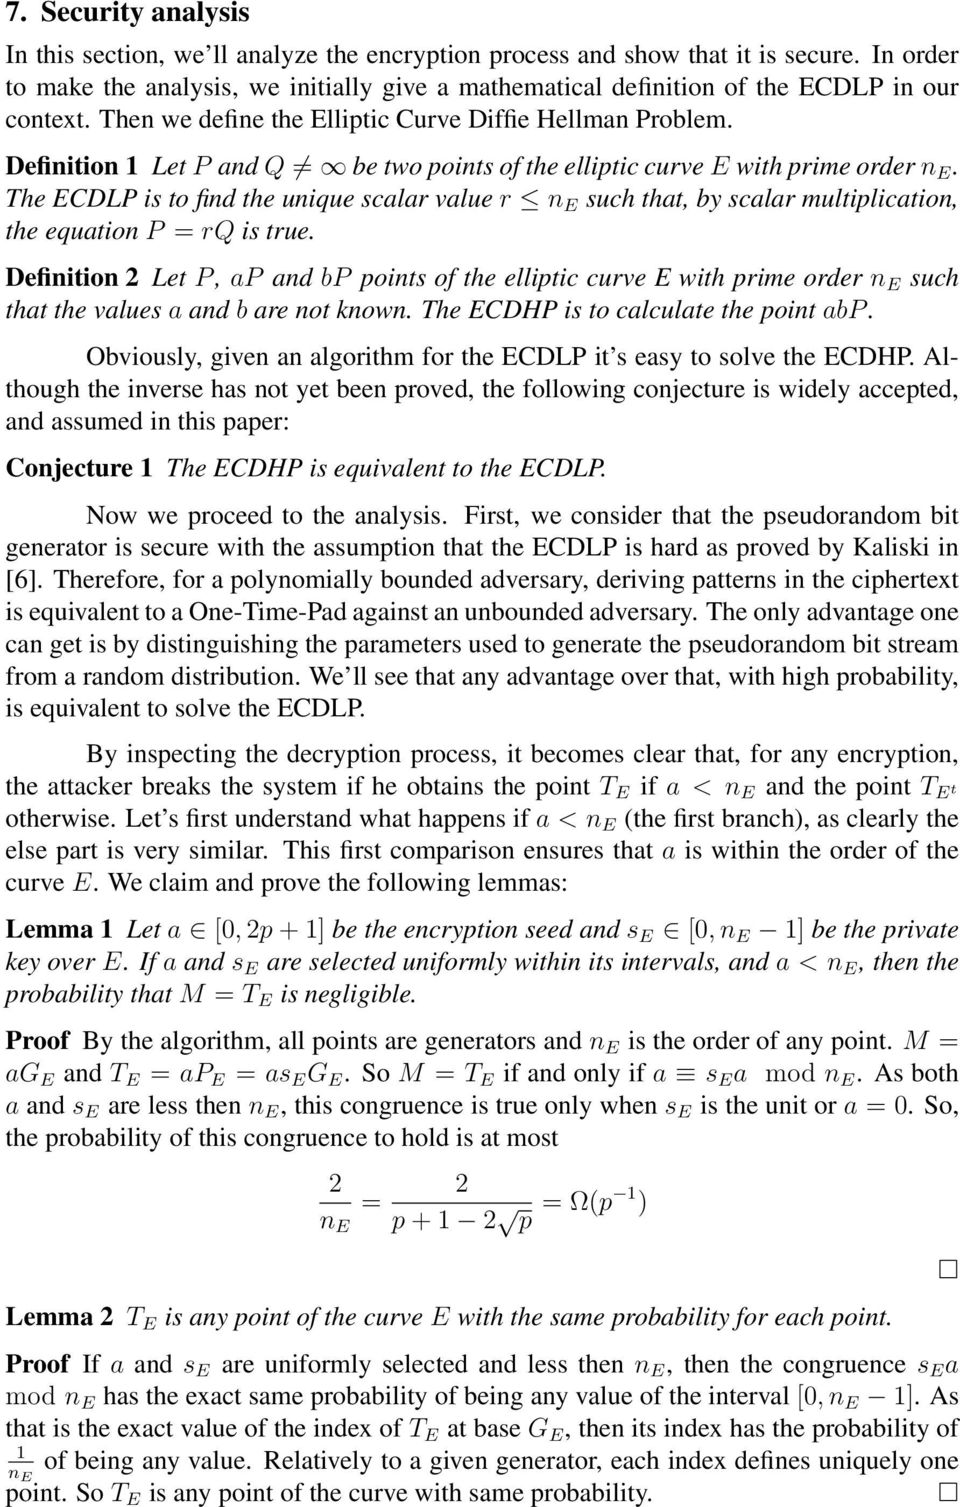 Definition 1 Let P and Q be two points of the elliptic curve E with prime order n E.